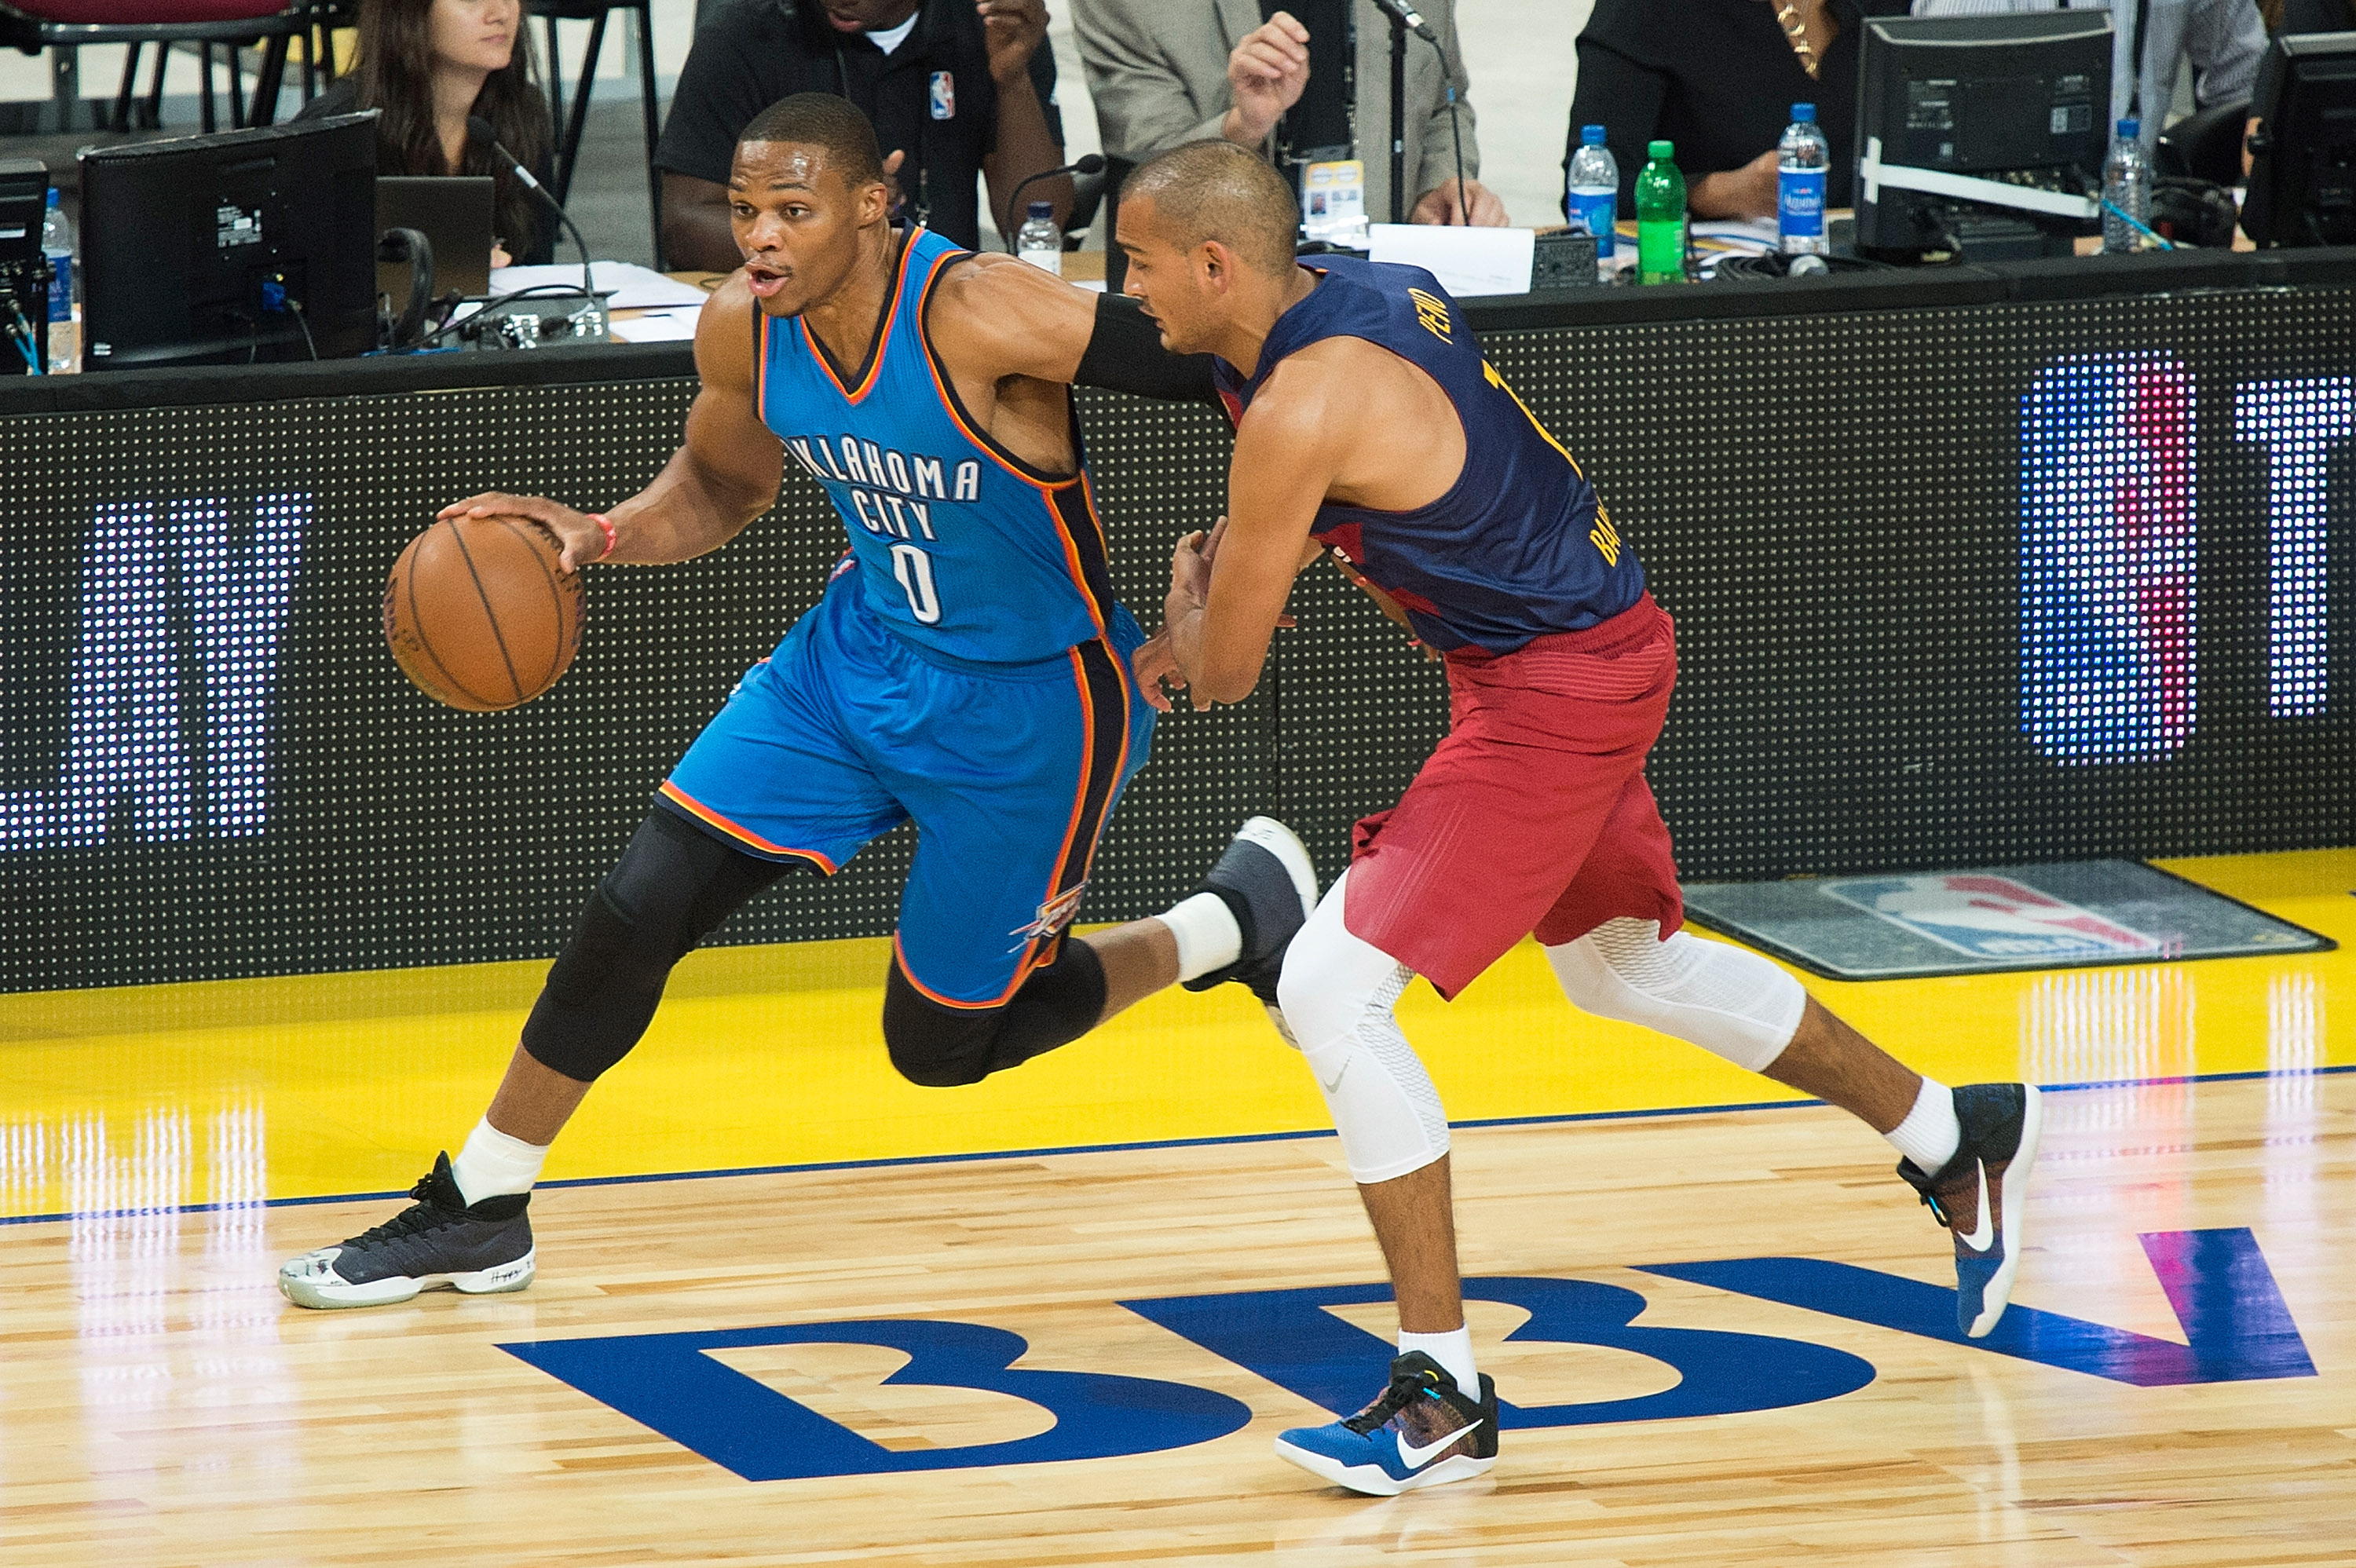 a9d593bba37c 5 Intriguing NBA Season Storylines That Don t Involve Golden State